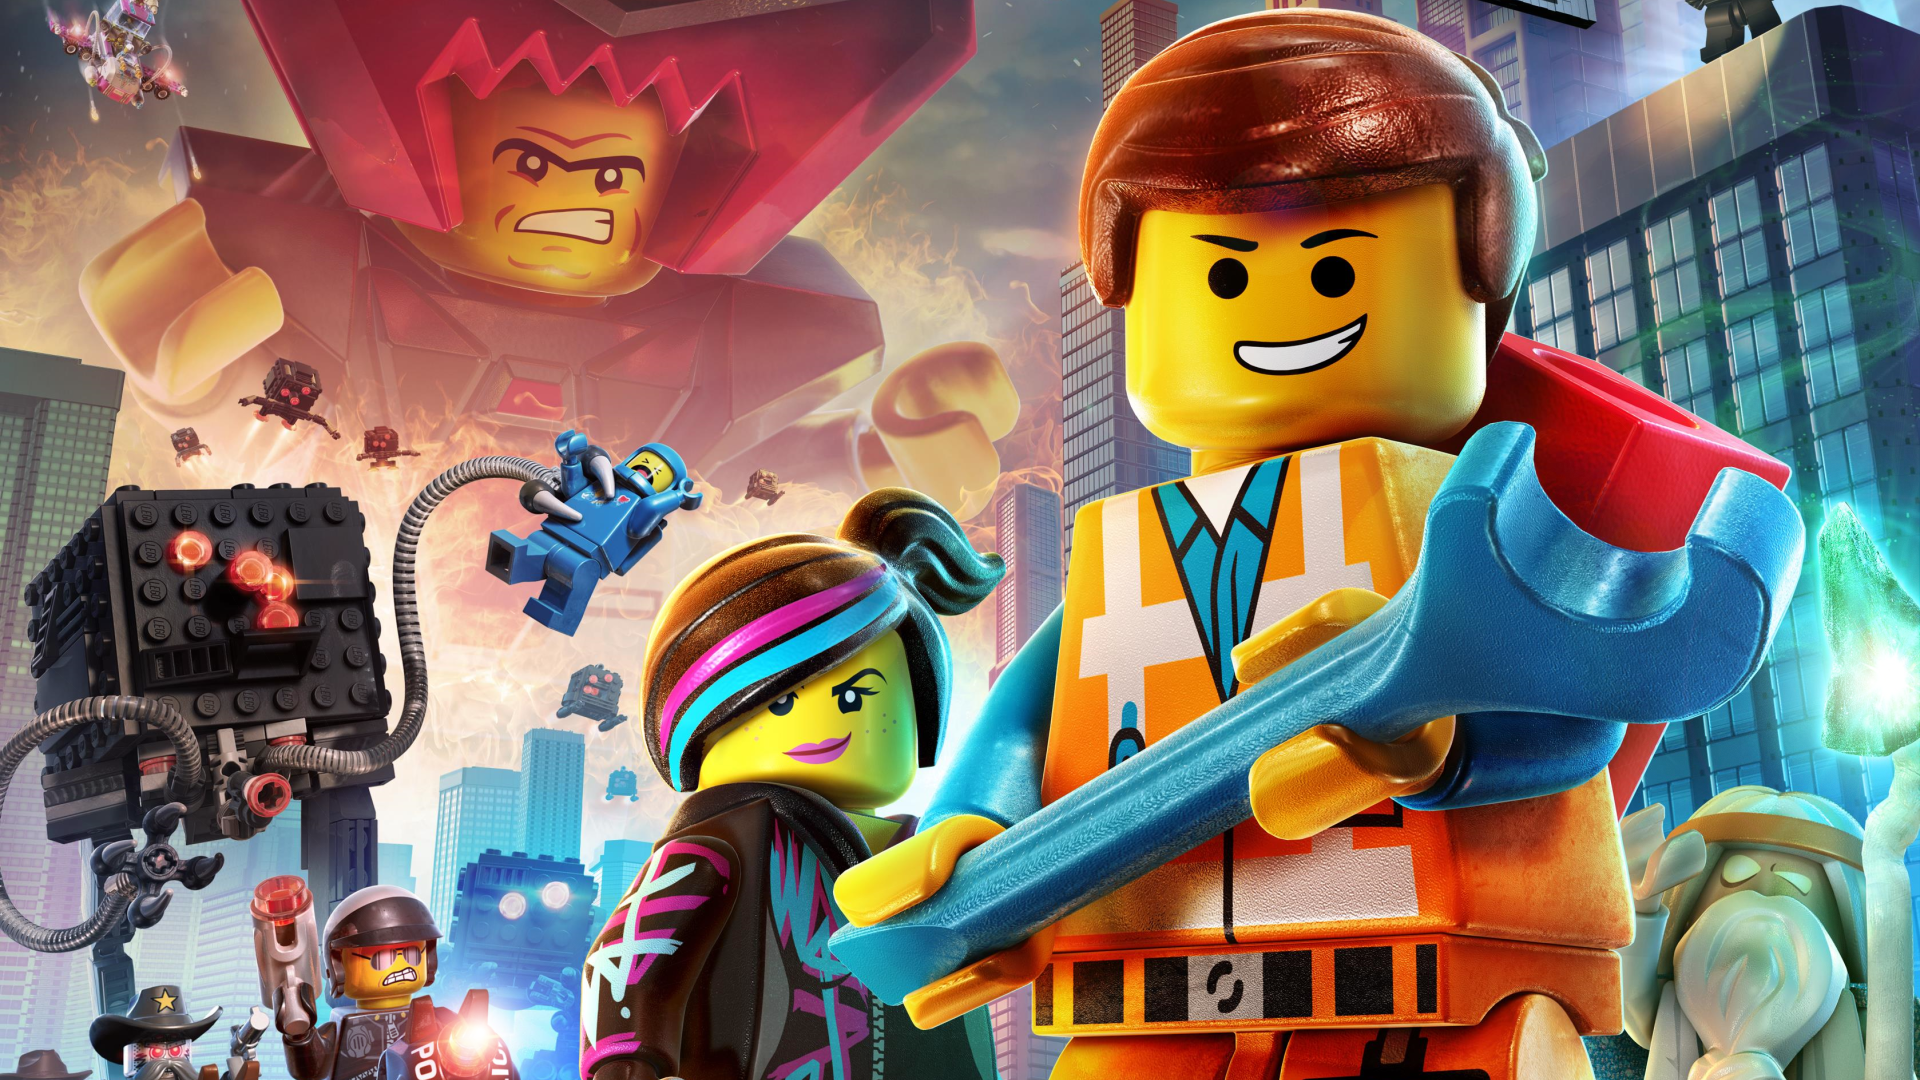 Weekly Wallpaper Put Some LEGO People On Your Desktop Lifehacker 1920x1080